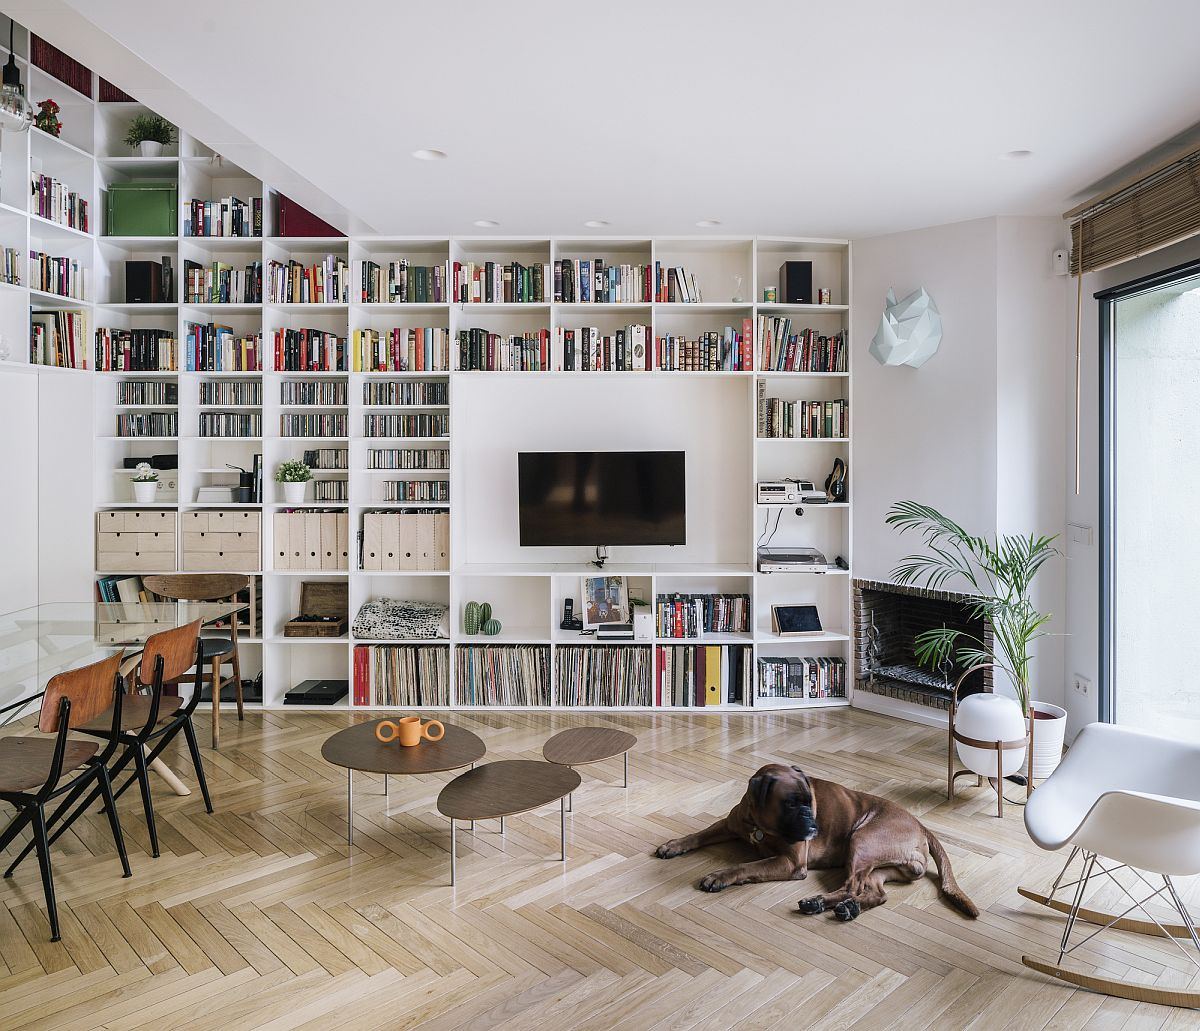 Bookshelves make the biggest impact in this single-family revamped home in Madrid with a neutral color scheme